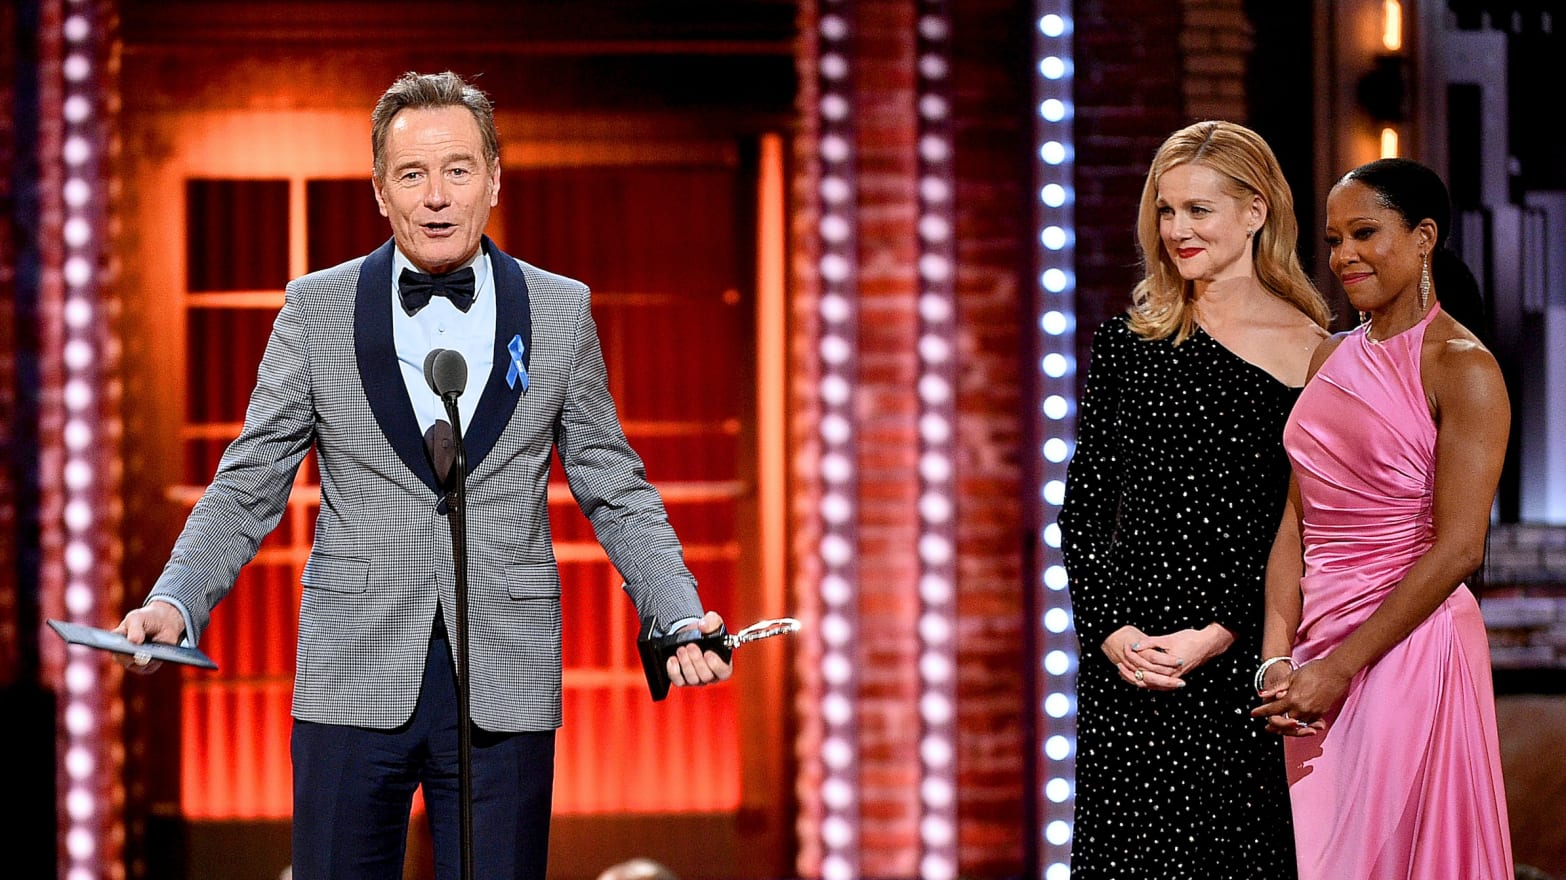 Bryan Cranston Calls Out Trump at the Tony Awards: 'Demagoguery Is the Enemy of the People'